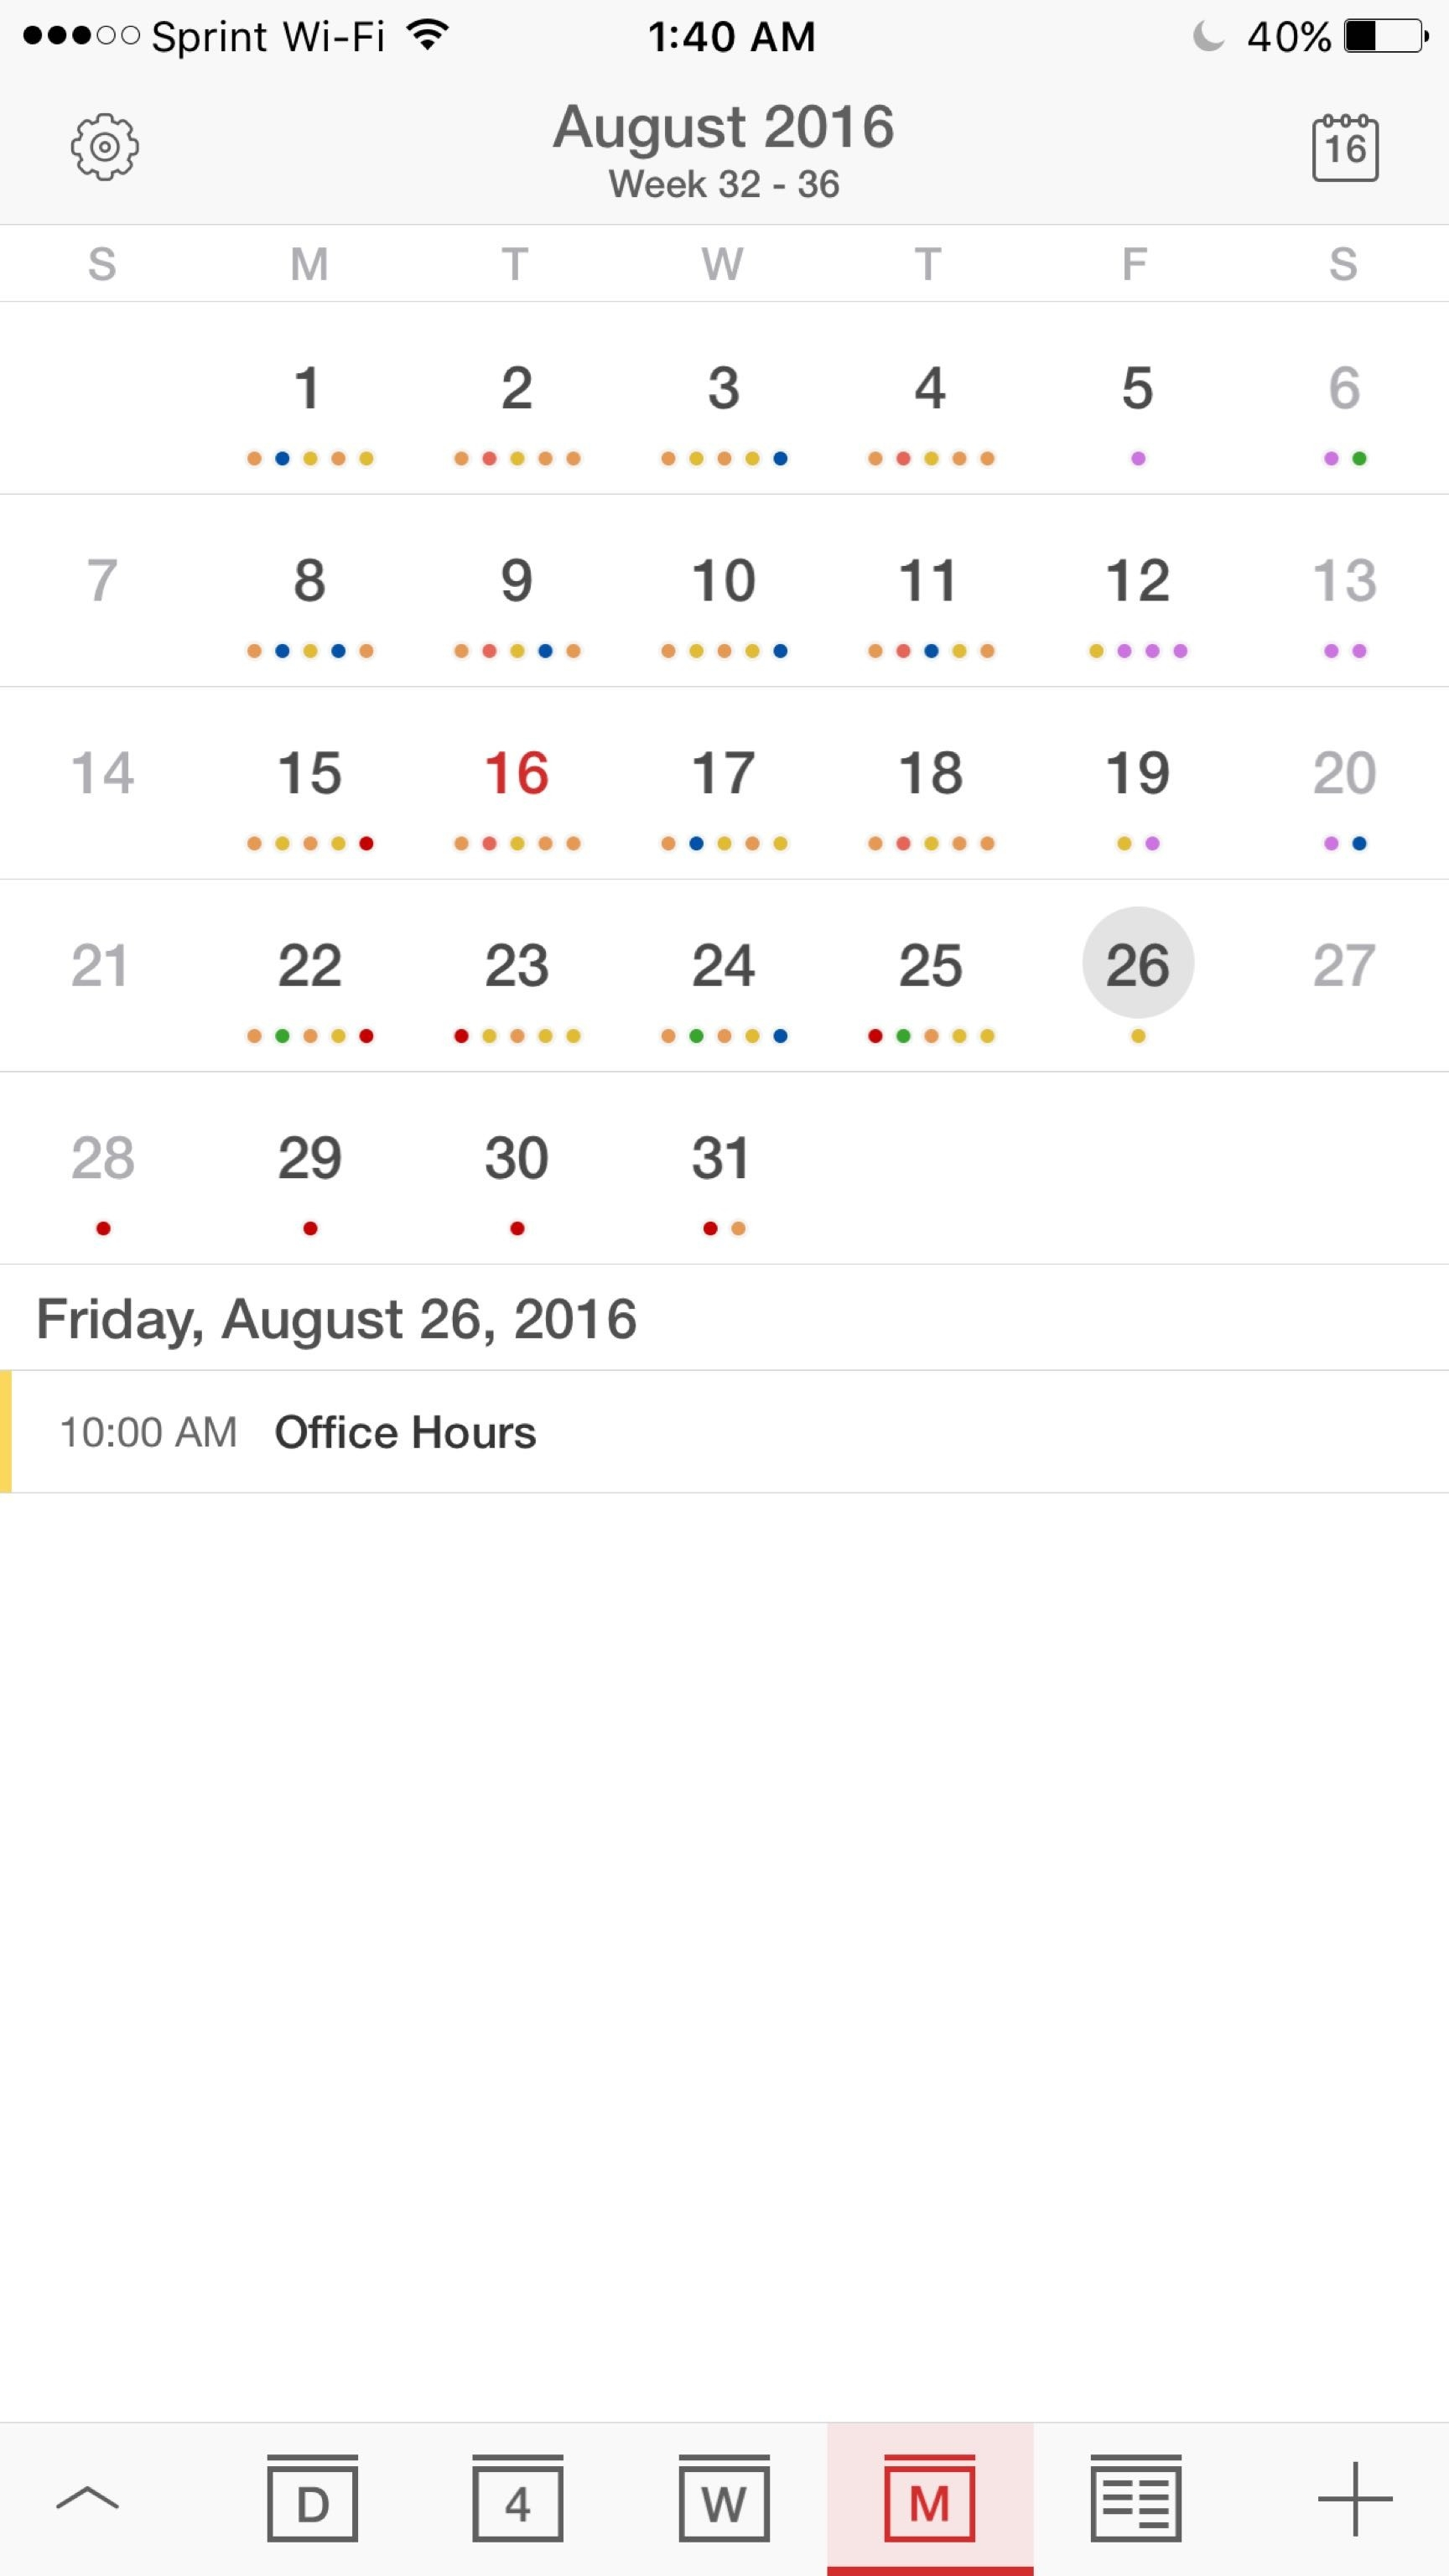 I'm Ok With The Iphone Calendar App, But Is There A Way To-Monthly View Iphone Calendar